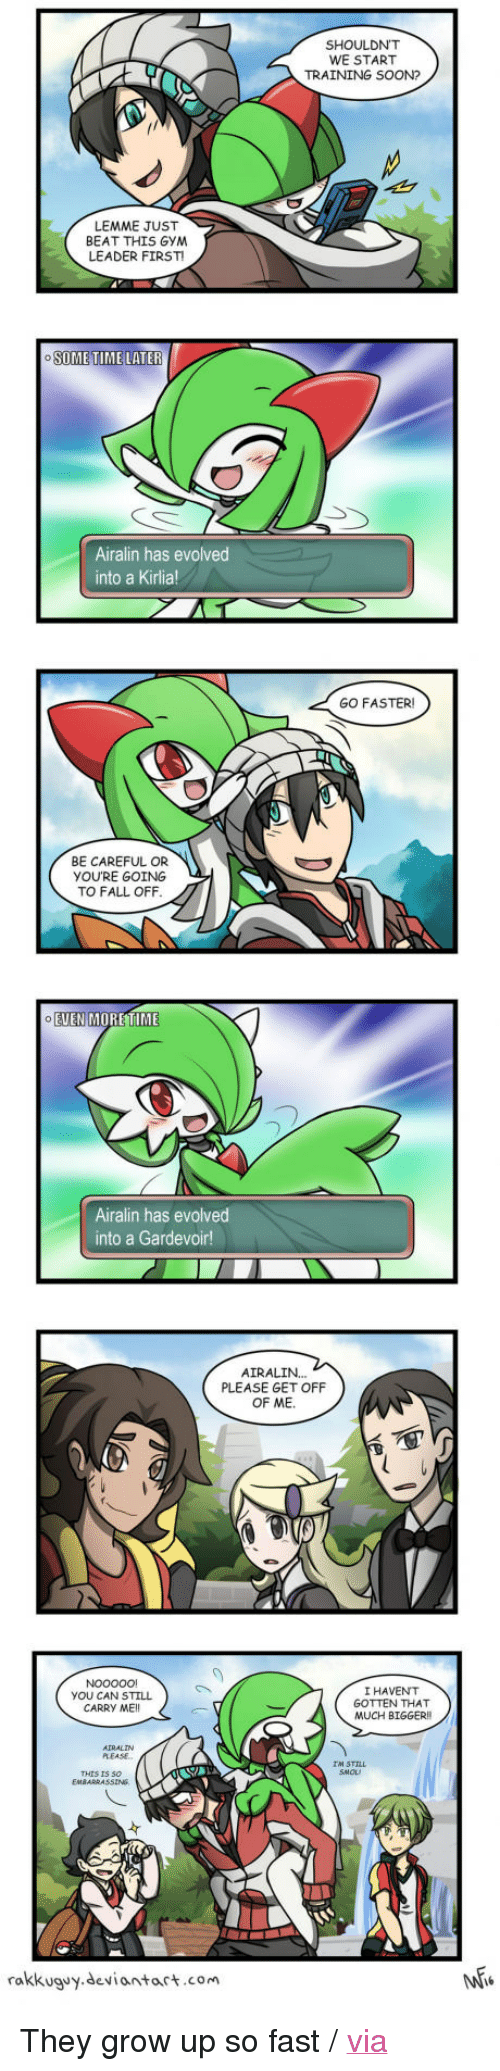 "gardevoir: SHOULDN'T  WE START  TRAINING SOON?  LEMME JUST  BEAT THIS GYM  LEADER FIRST  6  Airalin has evolved  into a Kirlia  GO FASTER  BE CAREFUL OR  YOU'RE GOING  TO FALL OFF  EUEN MORETIME  Airalin has evolved  into a Gardevoir!  AIRALIN...  PLEASE GET OFF  OF ME  YOU CAN STILL  CARRY ME!!  I HAVENT  GOTTEN THAT  MUCH BIGGER  PLEASE  THIS IS So  rakkuguy.deviantart.com <p>They grow up so fast / <a href=""http://9gag.com/gag/aA1Kqpd"">via</a></p>"